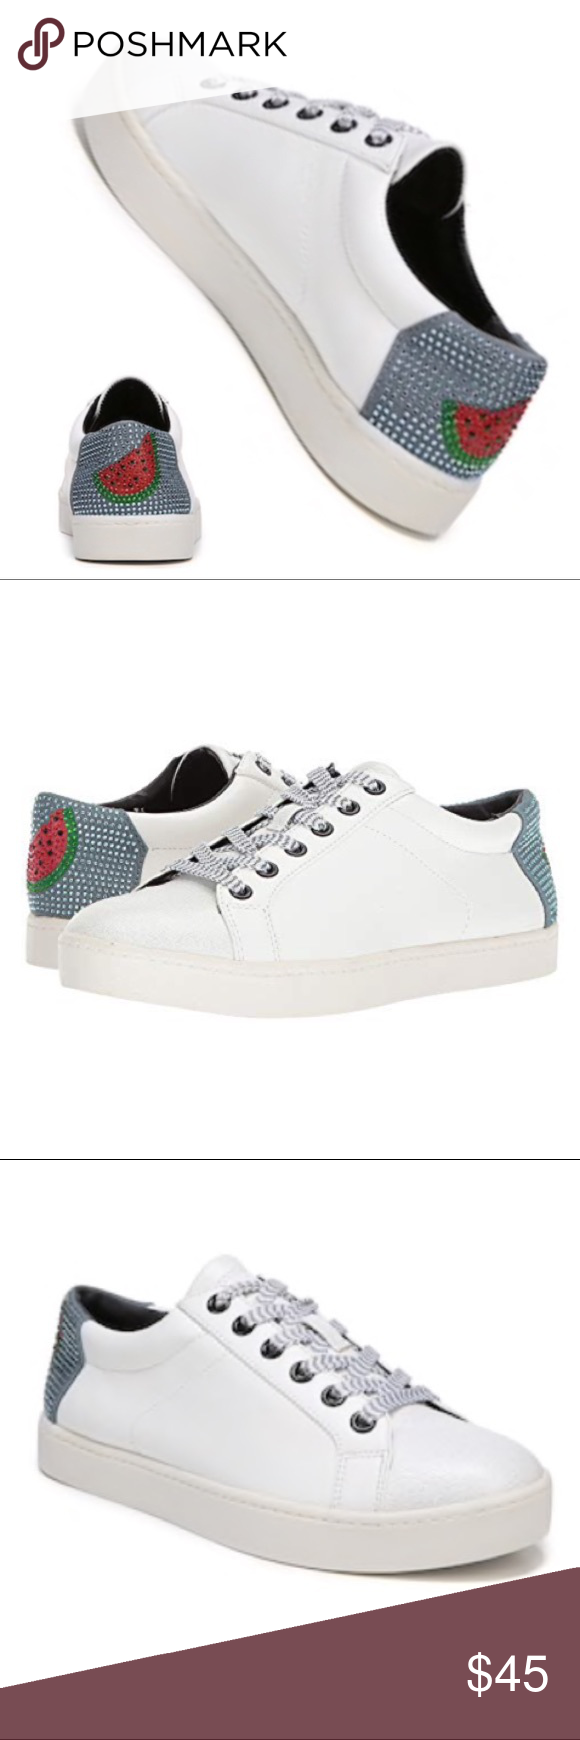 963fbd4a3457 Circus by Sam Edelman Collins Watermelon Sneakers NWOB. These women s  Collins sneakers by Circus by Sam Edelman take an everyday staple and give  it a ...